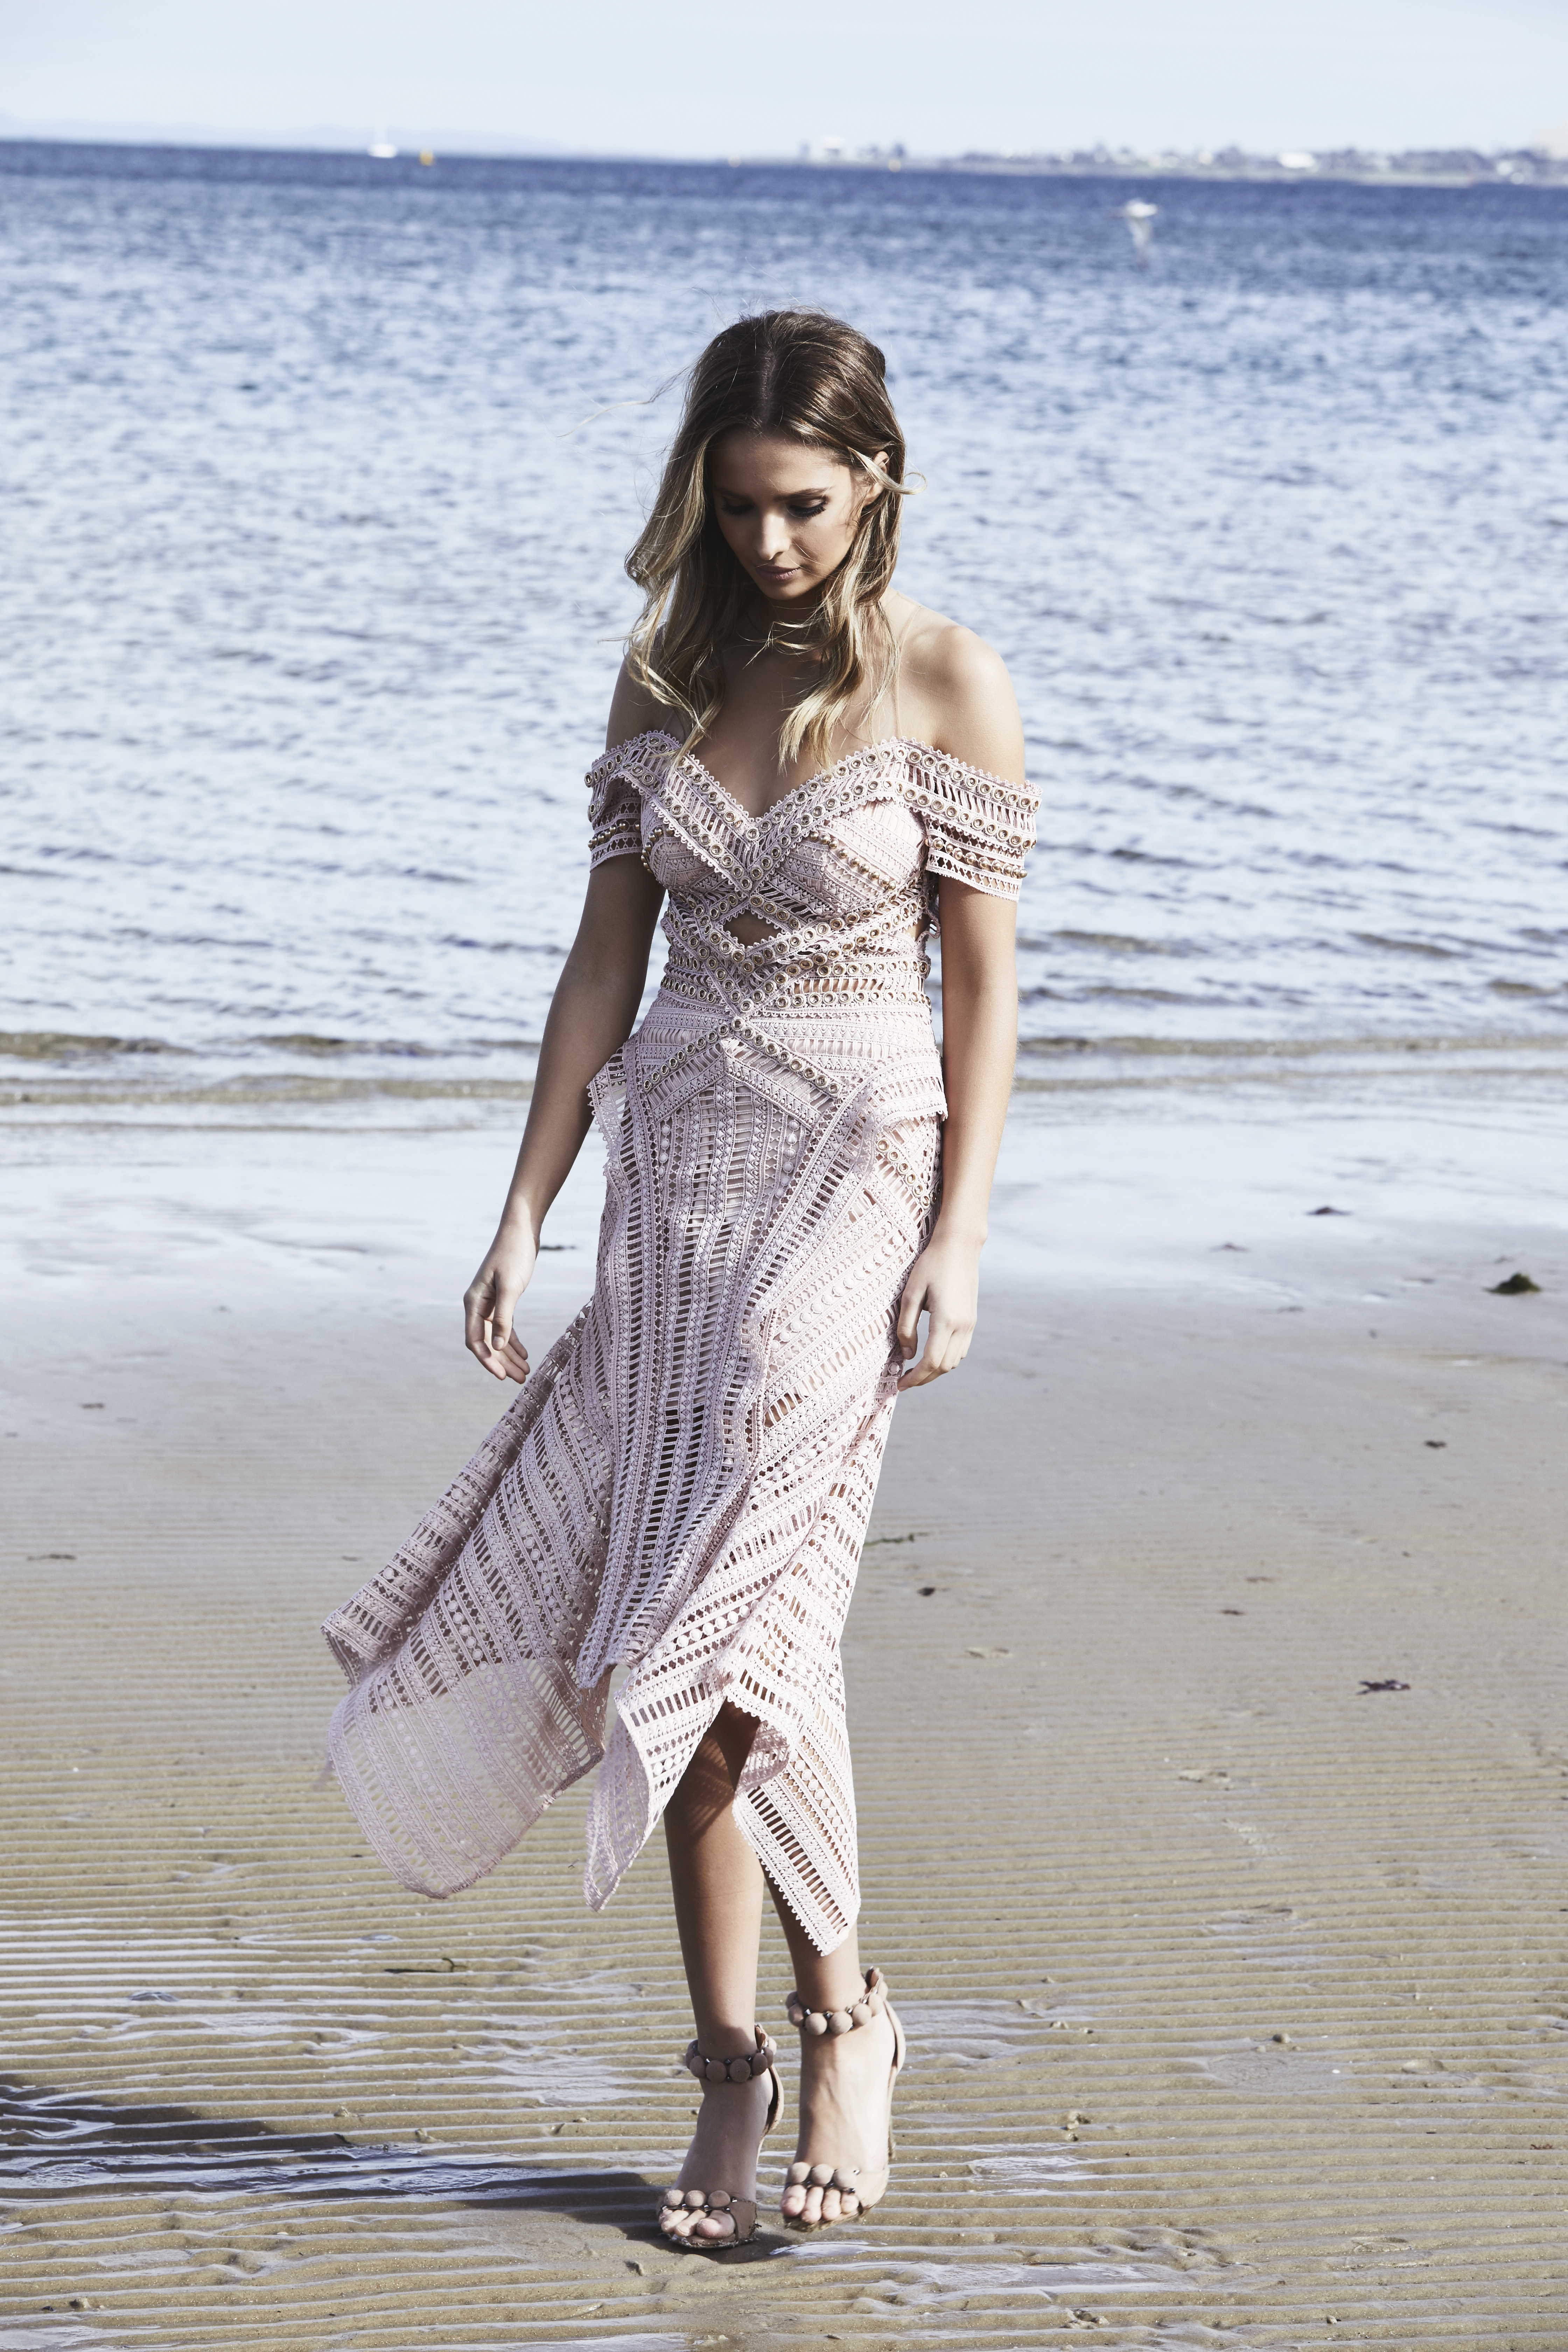 Sand dress pictures